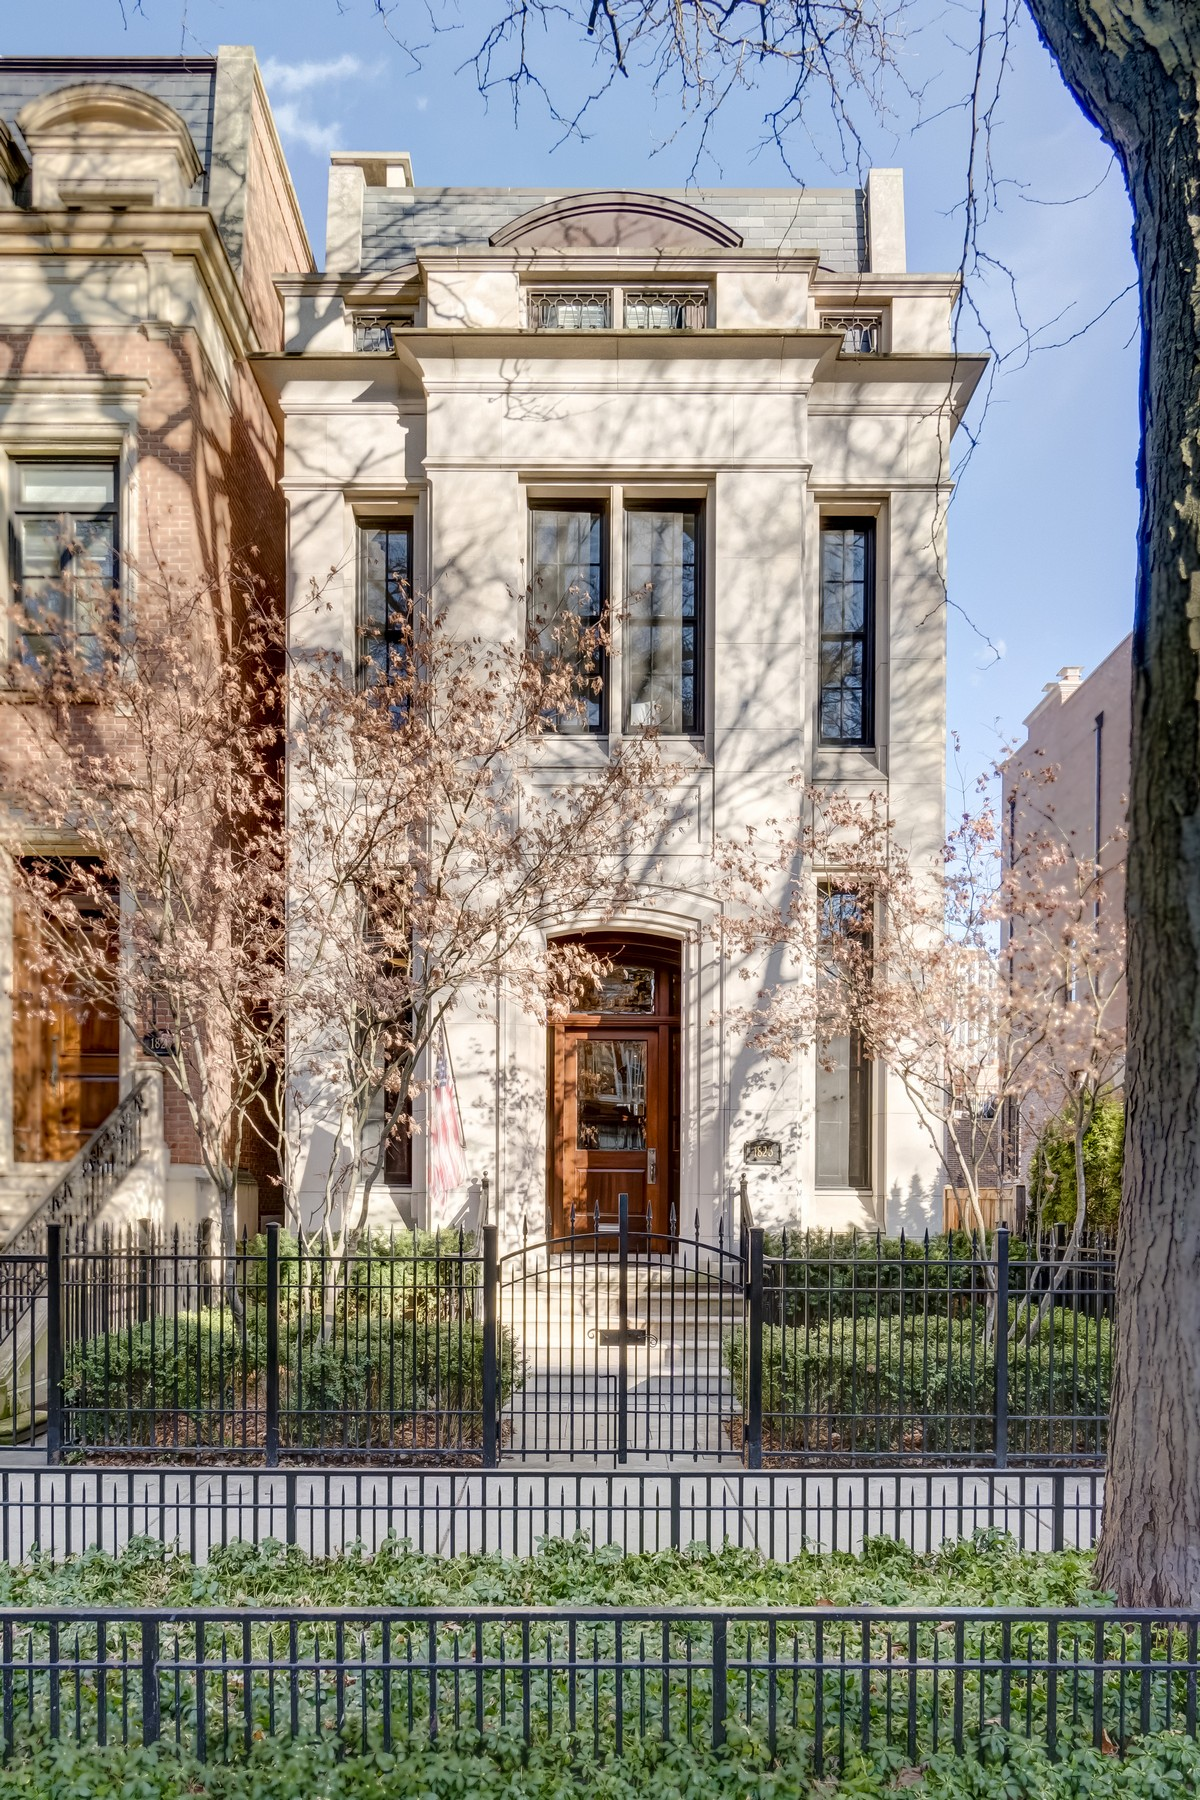 一戸建て のために 売買 アット Exclusive Metzler Hull East Lincoln Park Home 1823 N Cleveland Avenue Near North Side, Chicago, イリノイ, 60614 アメリカ合衆国